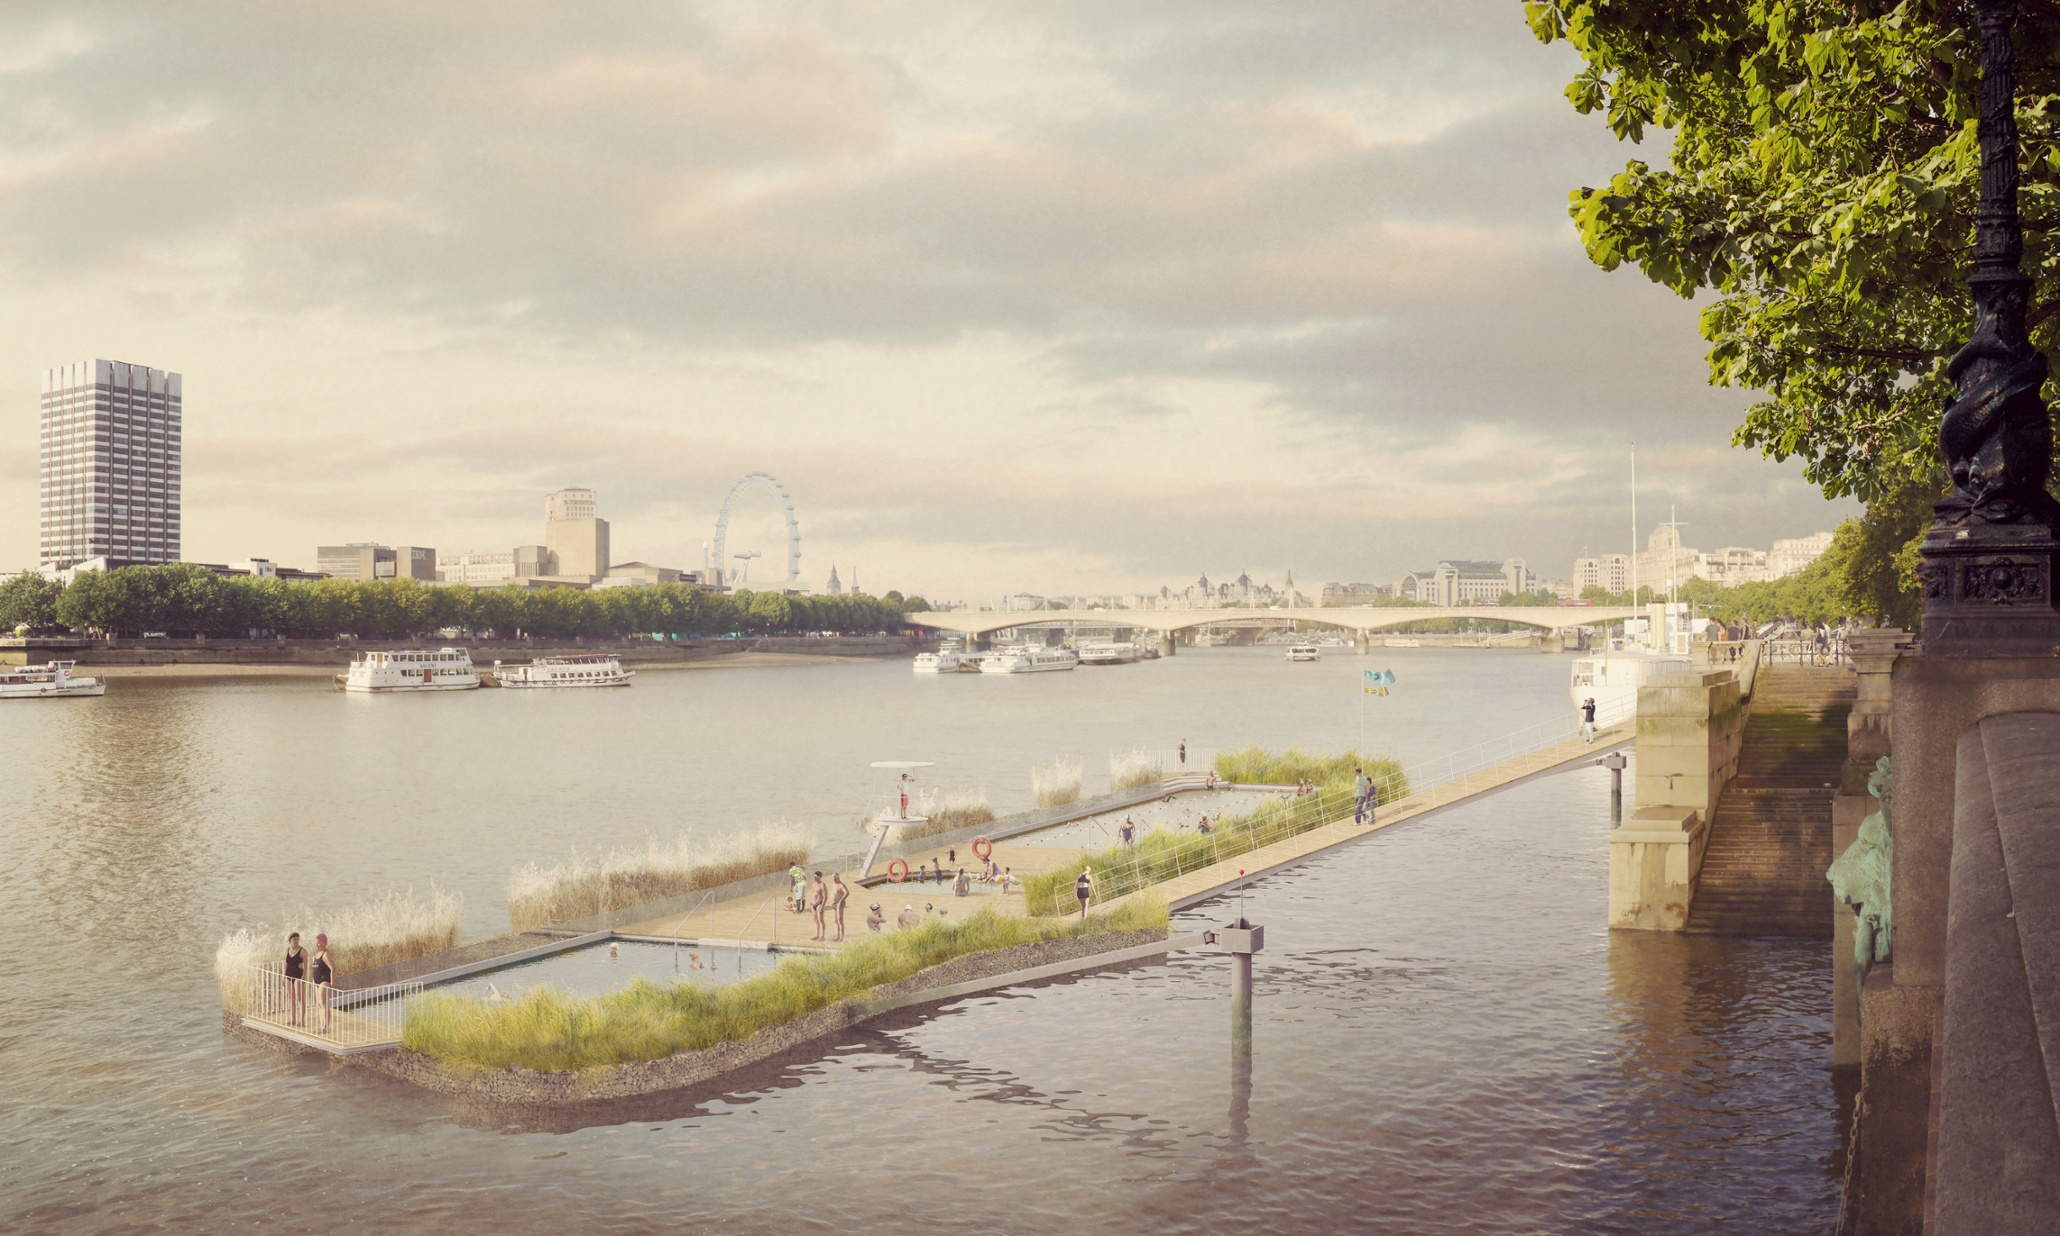 Open Air Swimming Pool Plans To Launch In Middle Of Thames In London Uk News The Guardian